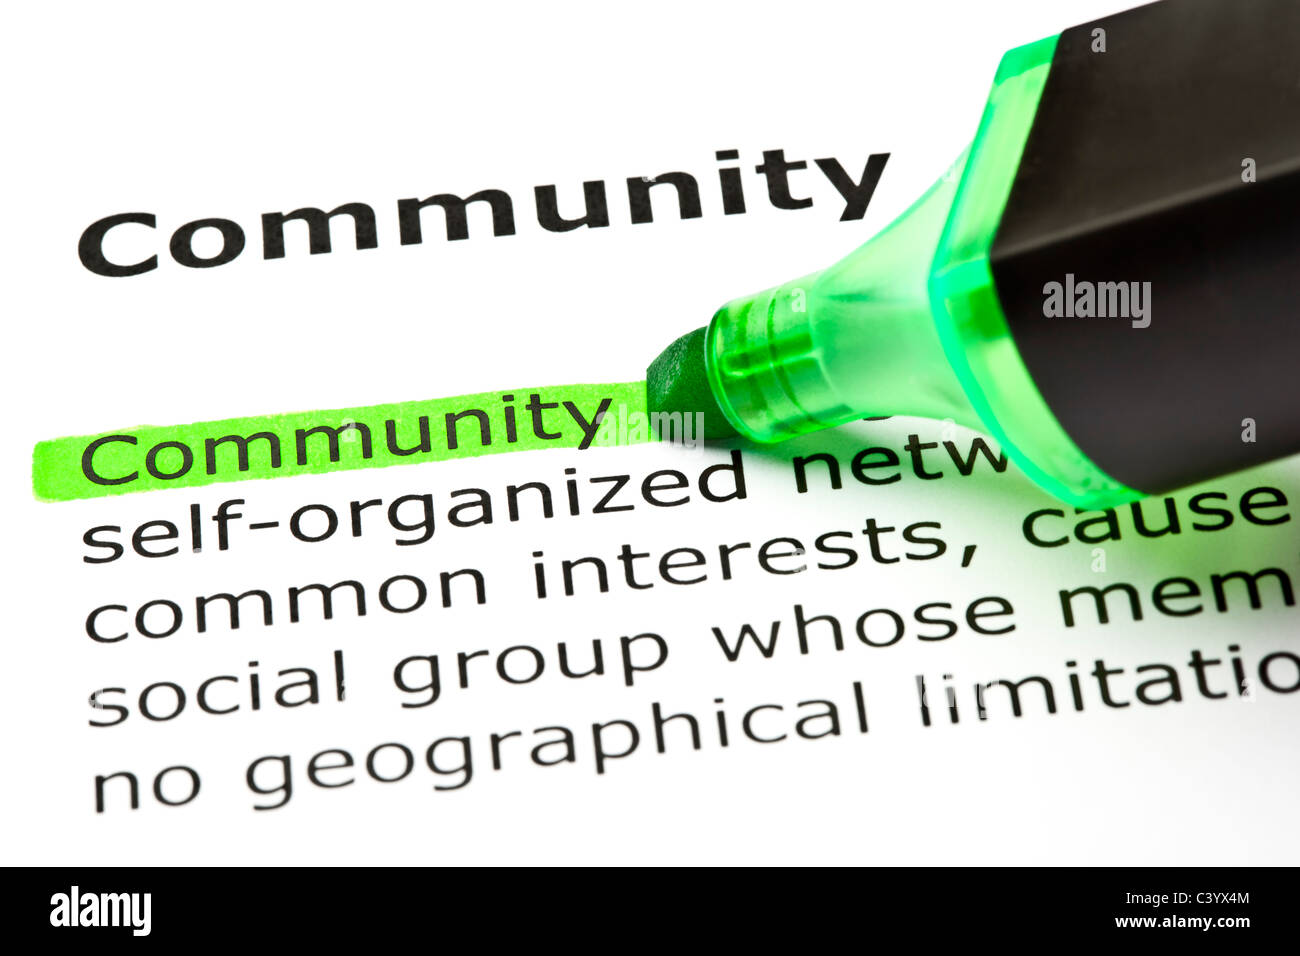 The word 'Community' highlighted in green with felt tip pen - Stock Image